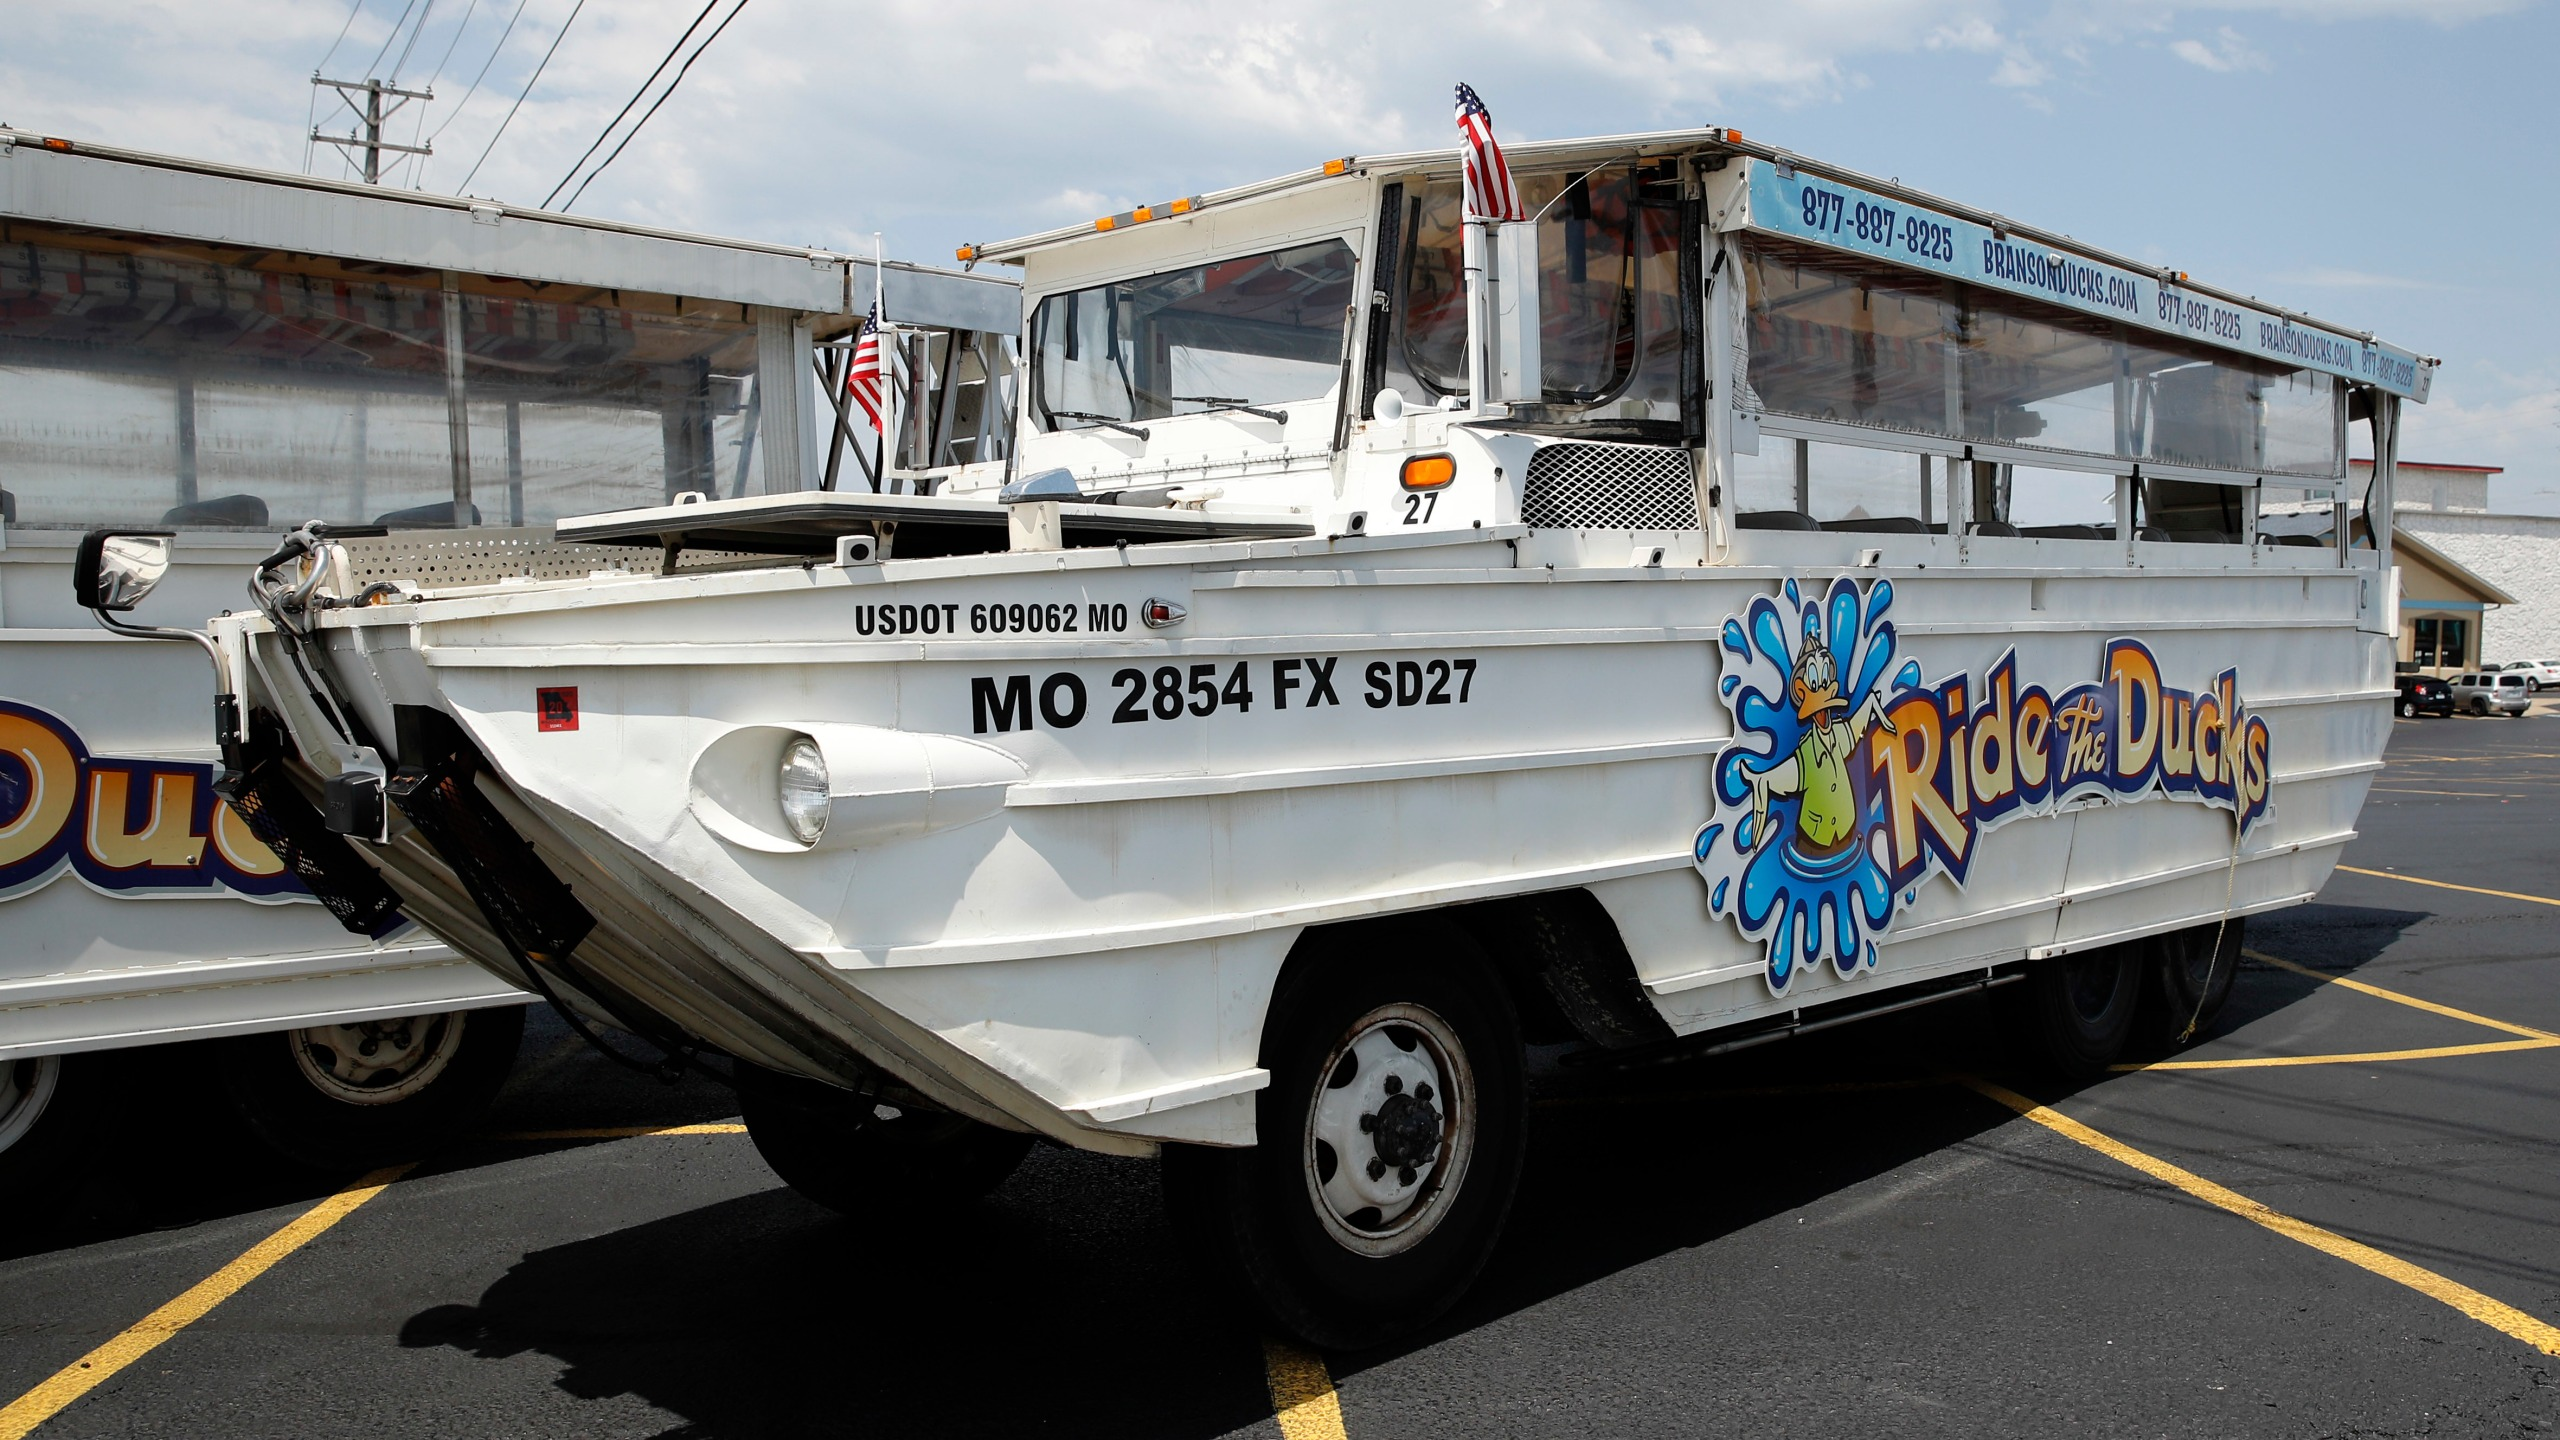 Missouri_Boat_Accident_Duck_Boats_43143-159532.jpg13785884